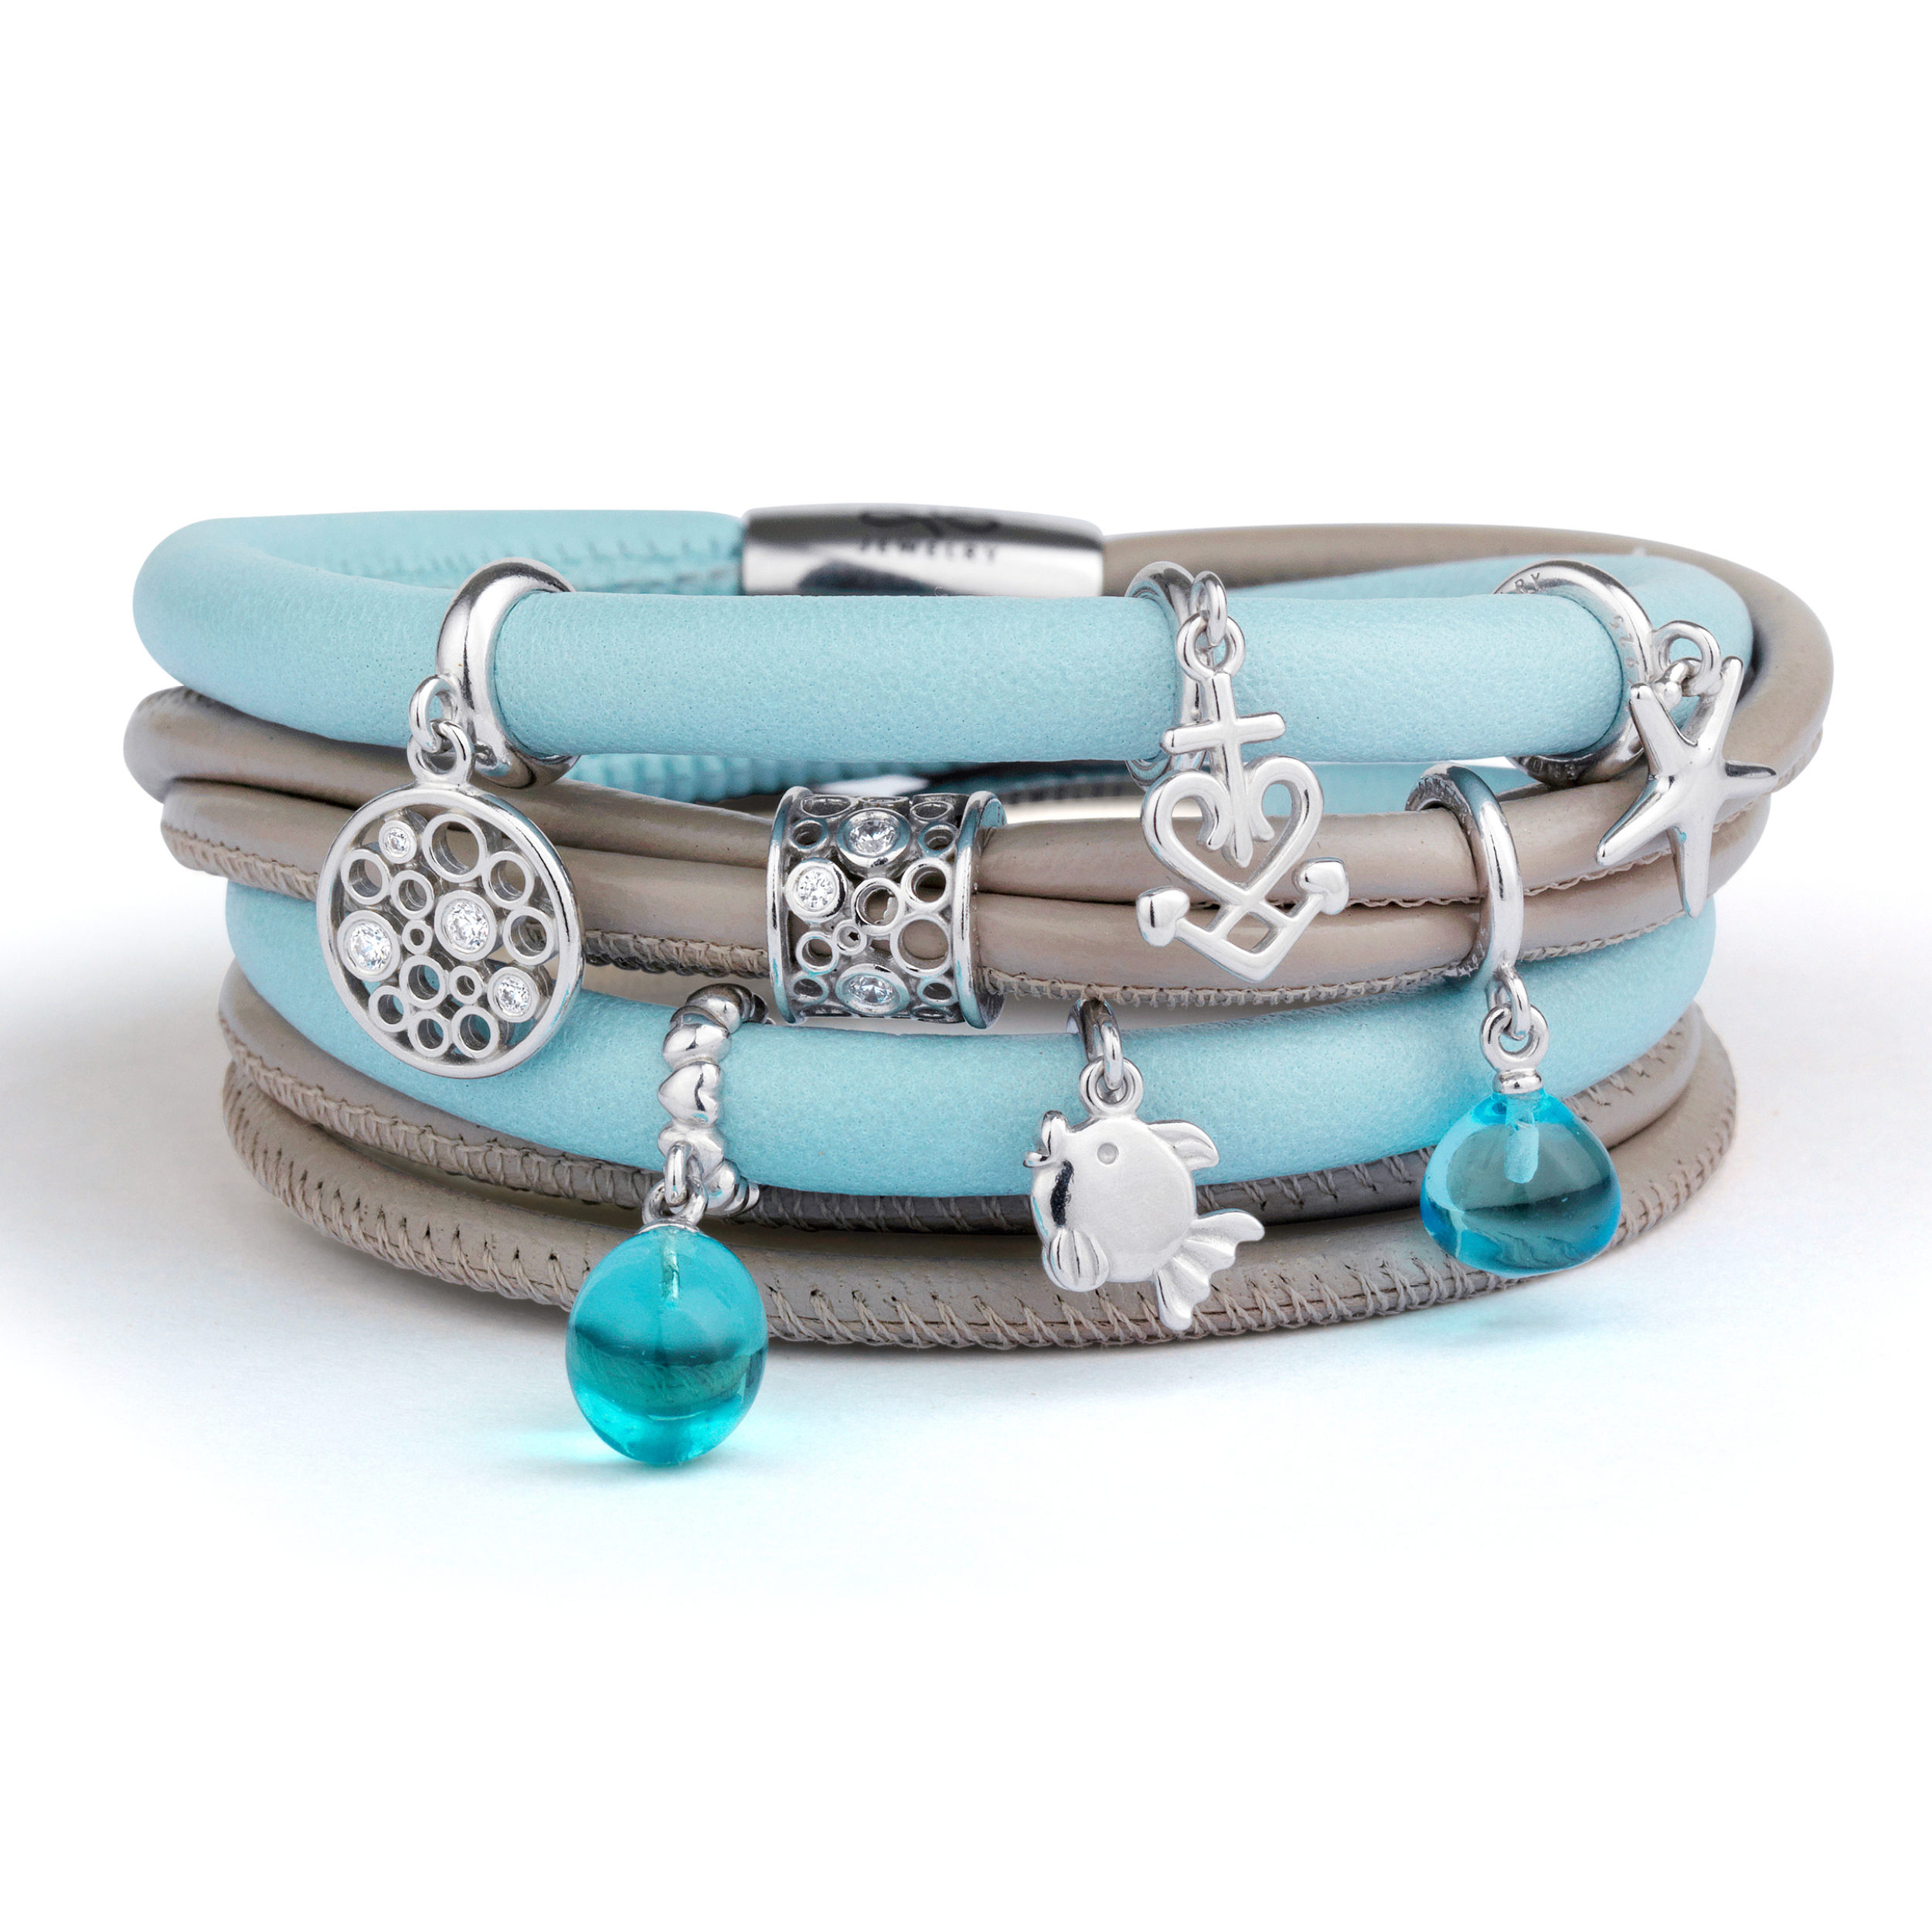 Jewellery by Endless - from Originals Jewellers & Gallery